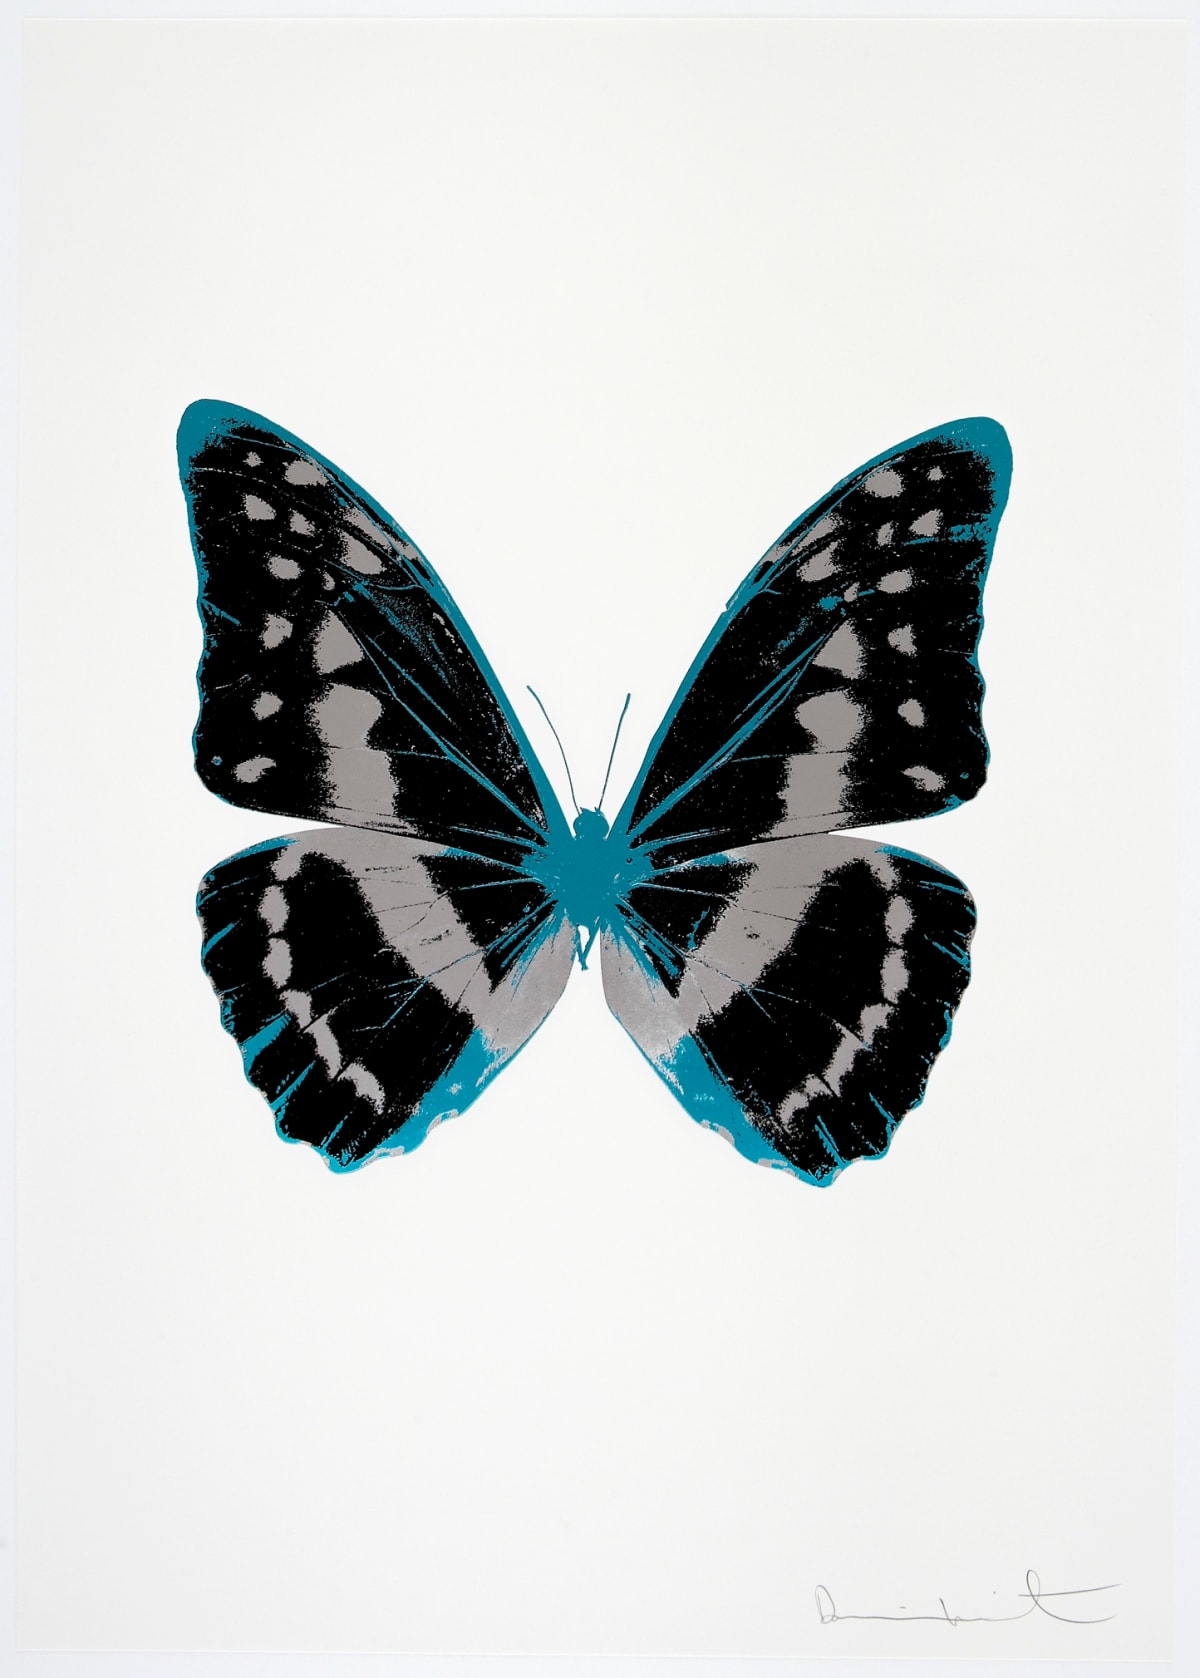 Damien Hirst The Souls III - Raven Black/Silver Gloss/Topaz, 2010 3 colour foil block on 300gsm Arches 88 archival paper. Signed and numbered. Published by Paul Stolper and Other Criteria 72 x 51cm OC7939 / 660-42 Edition of 15